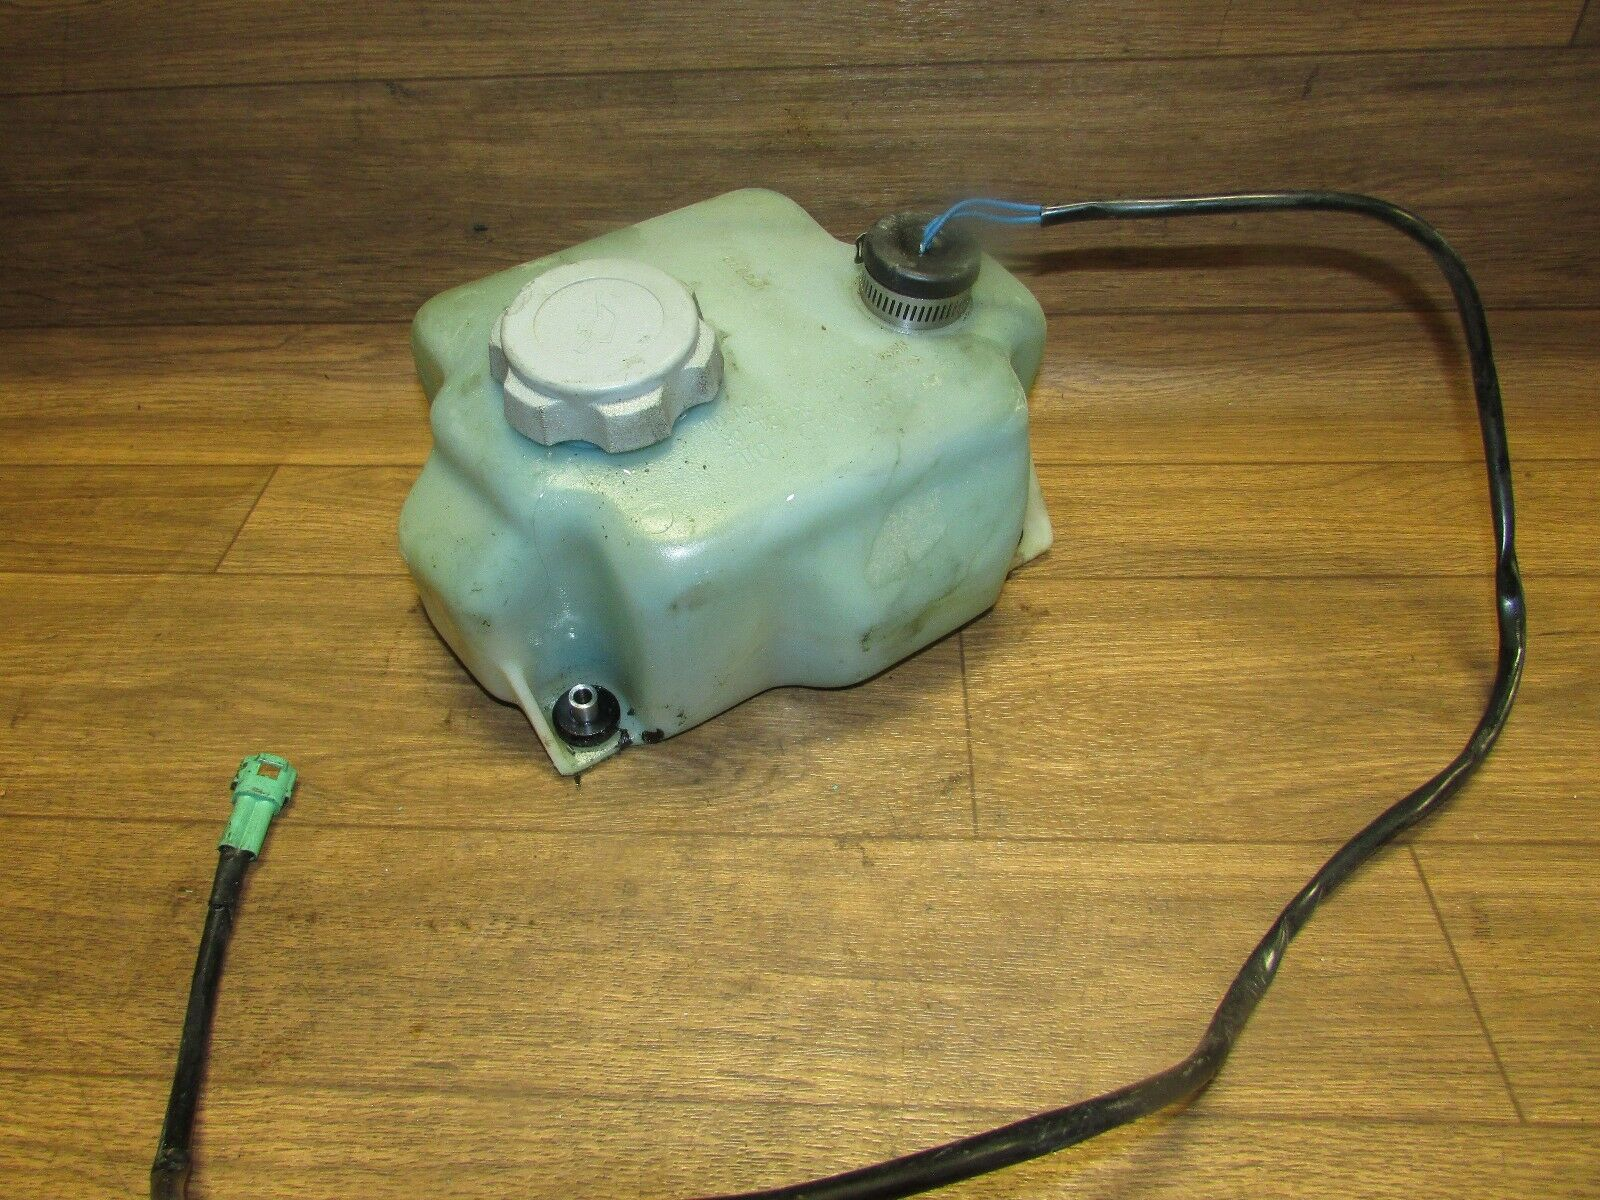 Kawasaki Jet Ski 1998 XI Sport 750, Oil Tank With Cap And Level Sensor 52001-372